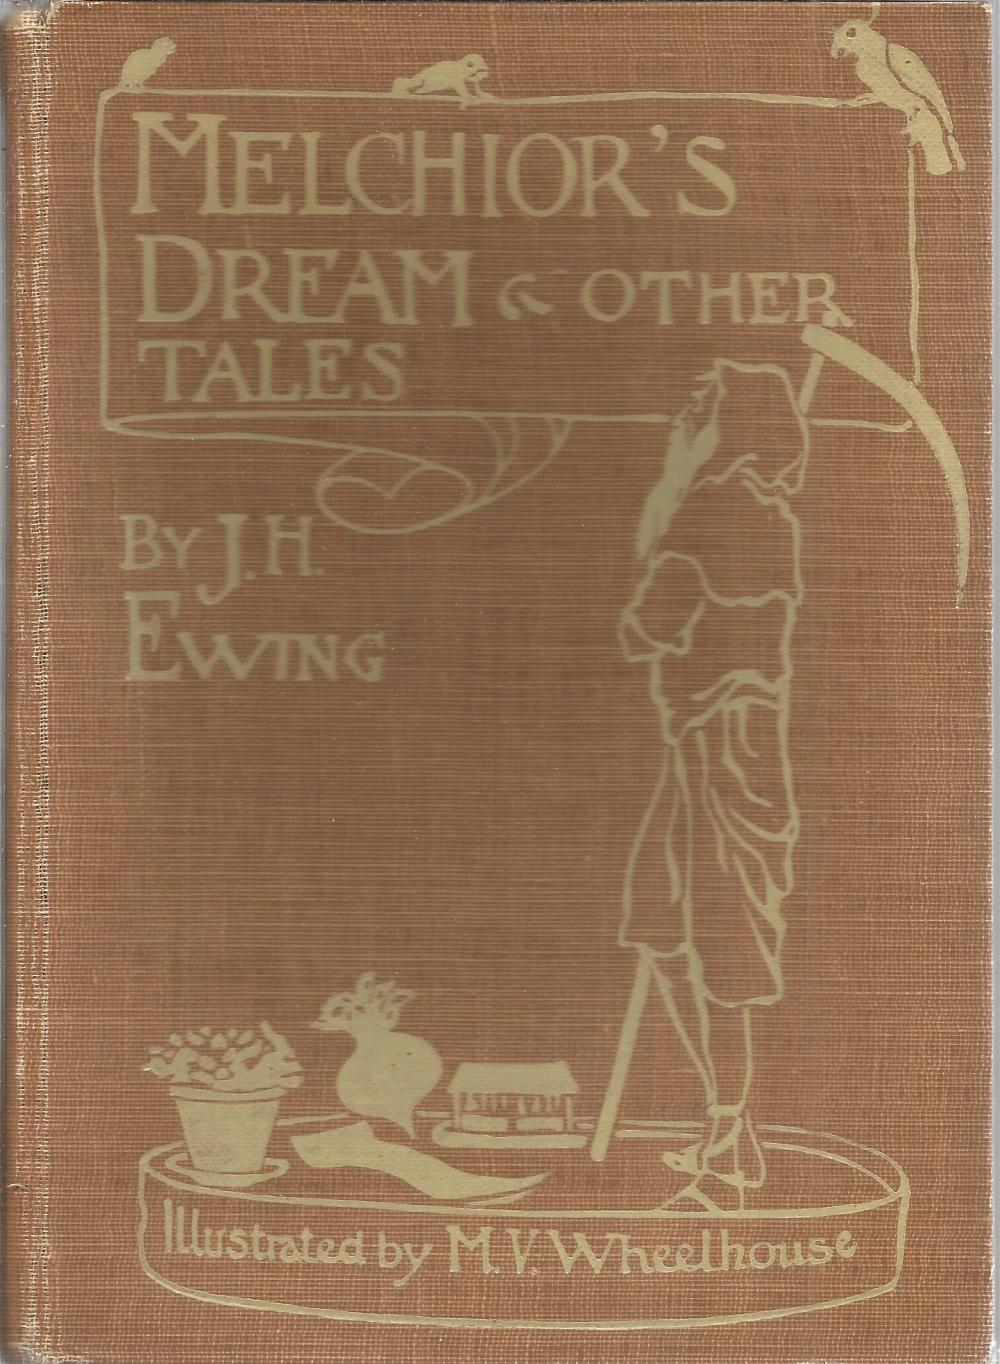 Melchior's Dream and other Tales by J H Ewing. Unsigned hardback book with no dust jacket